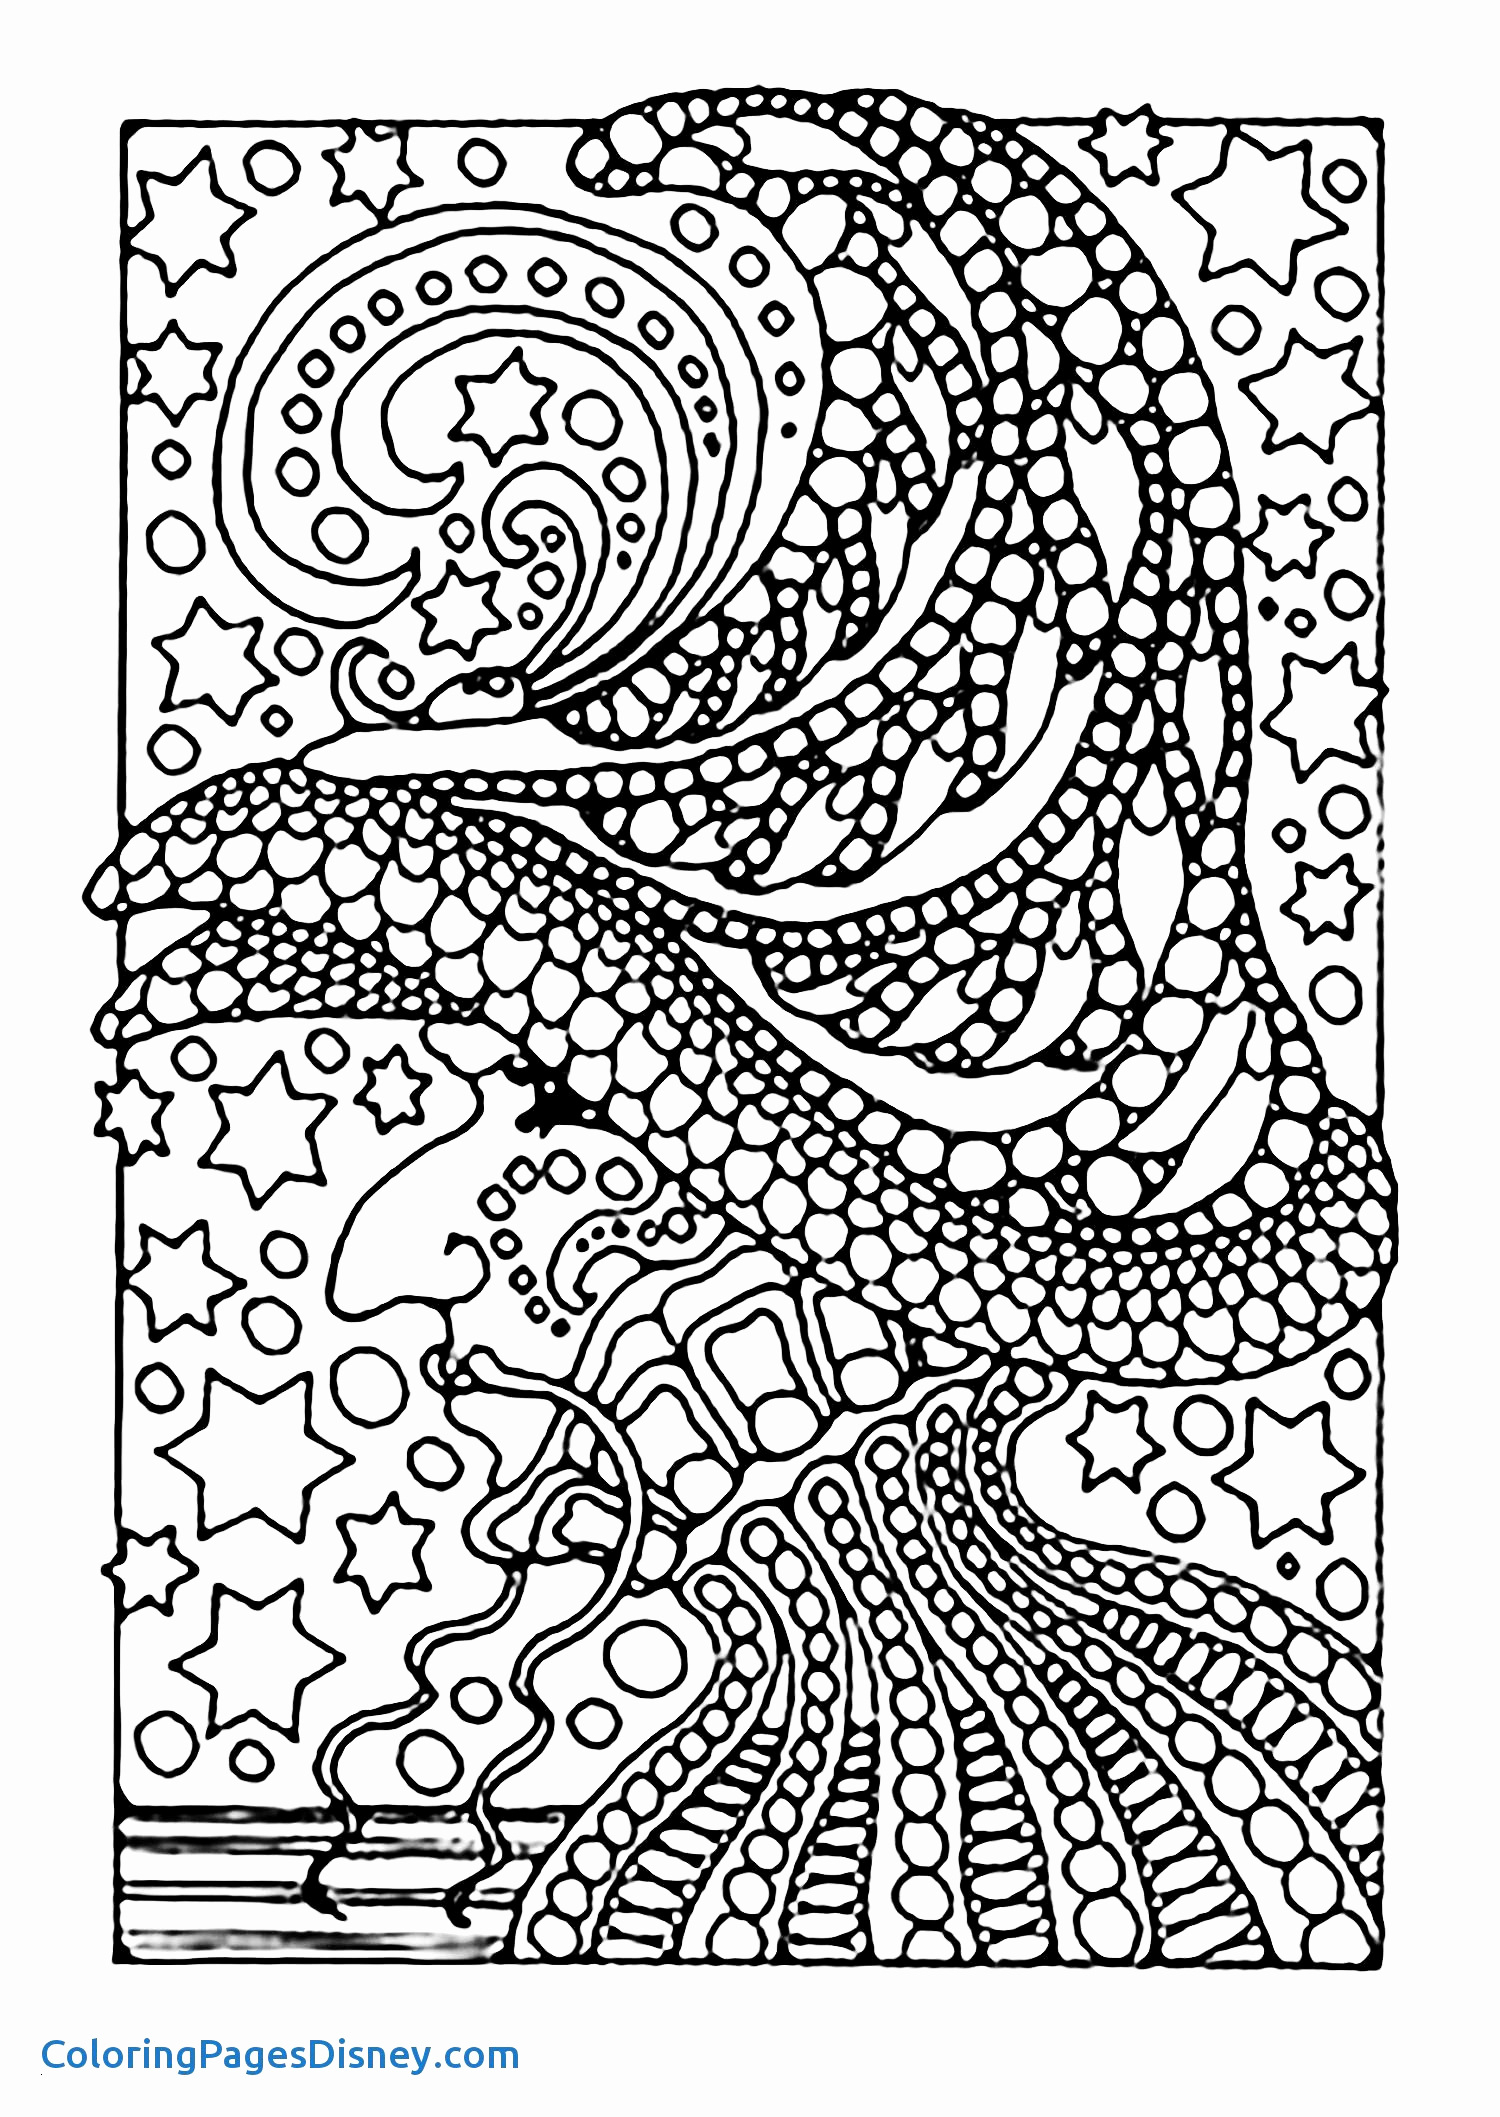 mandalas coloring pages Download-Mandala Coloring Pages Pretty Mandala Coloring Pages Awesome Big Mandala Coloring Pages 17-d